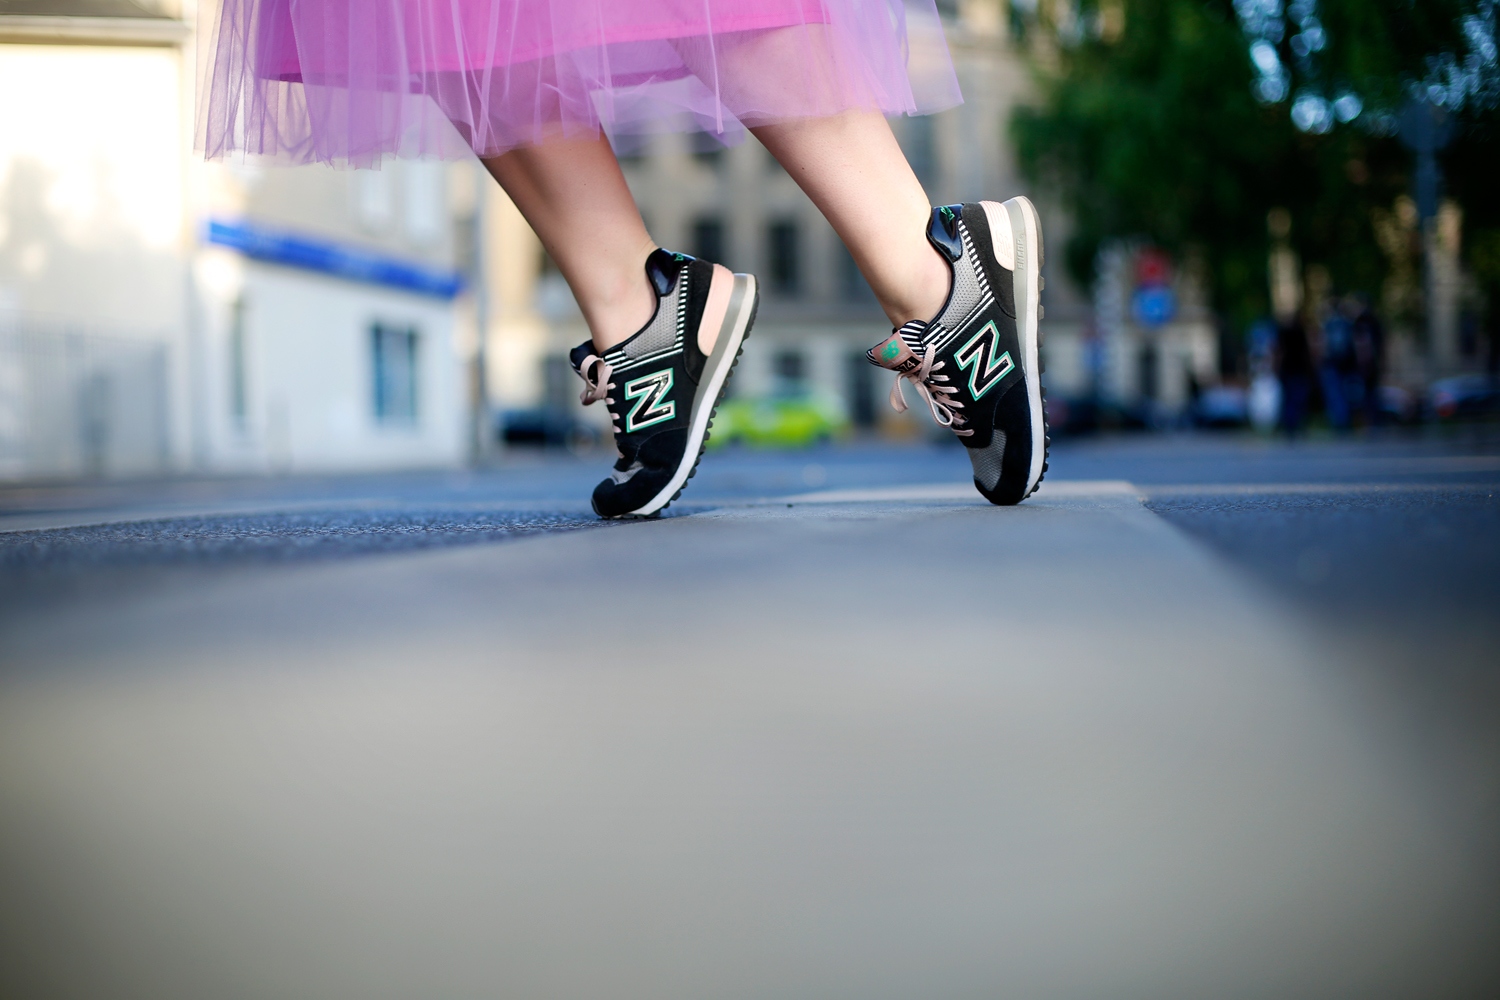 Girl dancing on the street in New Balance sneakers